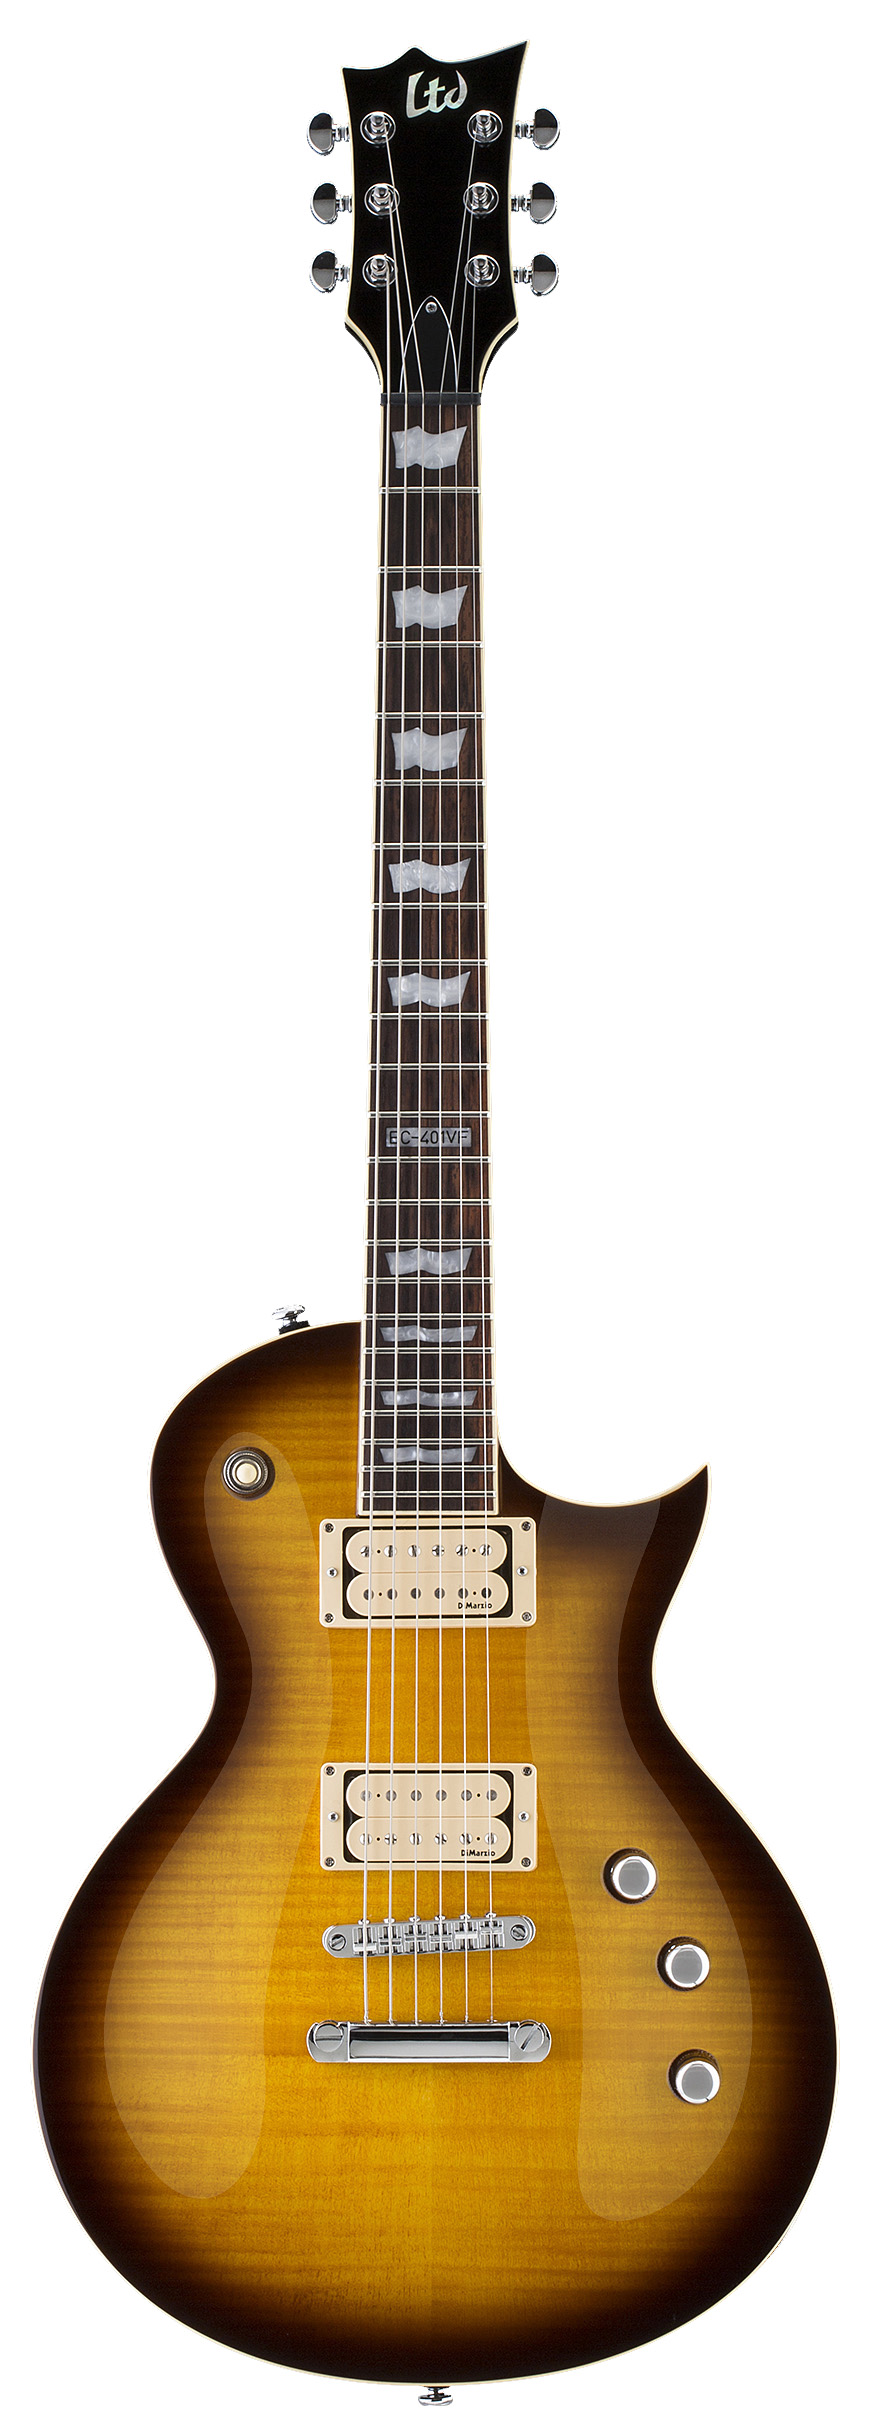 ESP LTD EC-401VF DMZ TSB EC Series Electric Guitar with Chrome Hardware and Tobacco Sunburst Finish